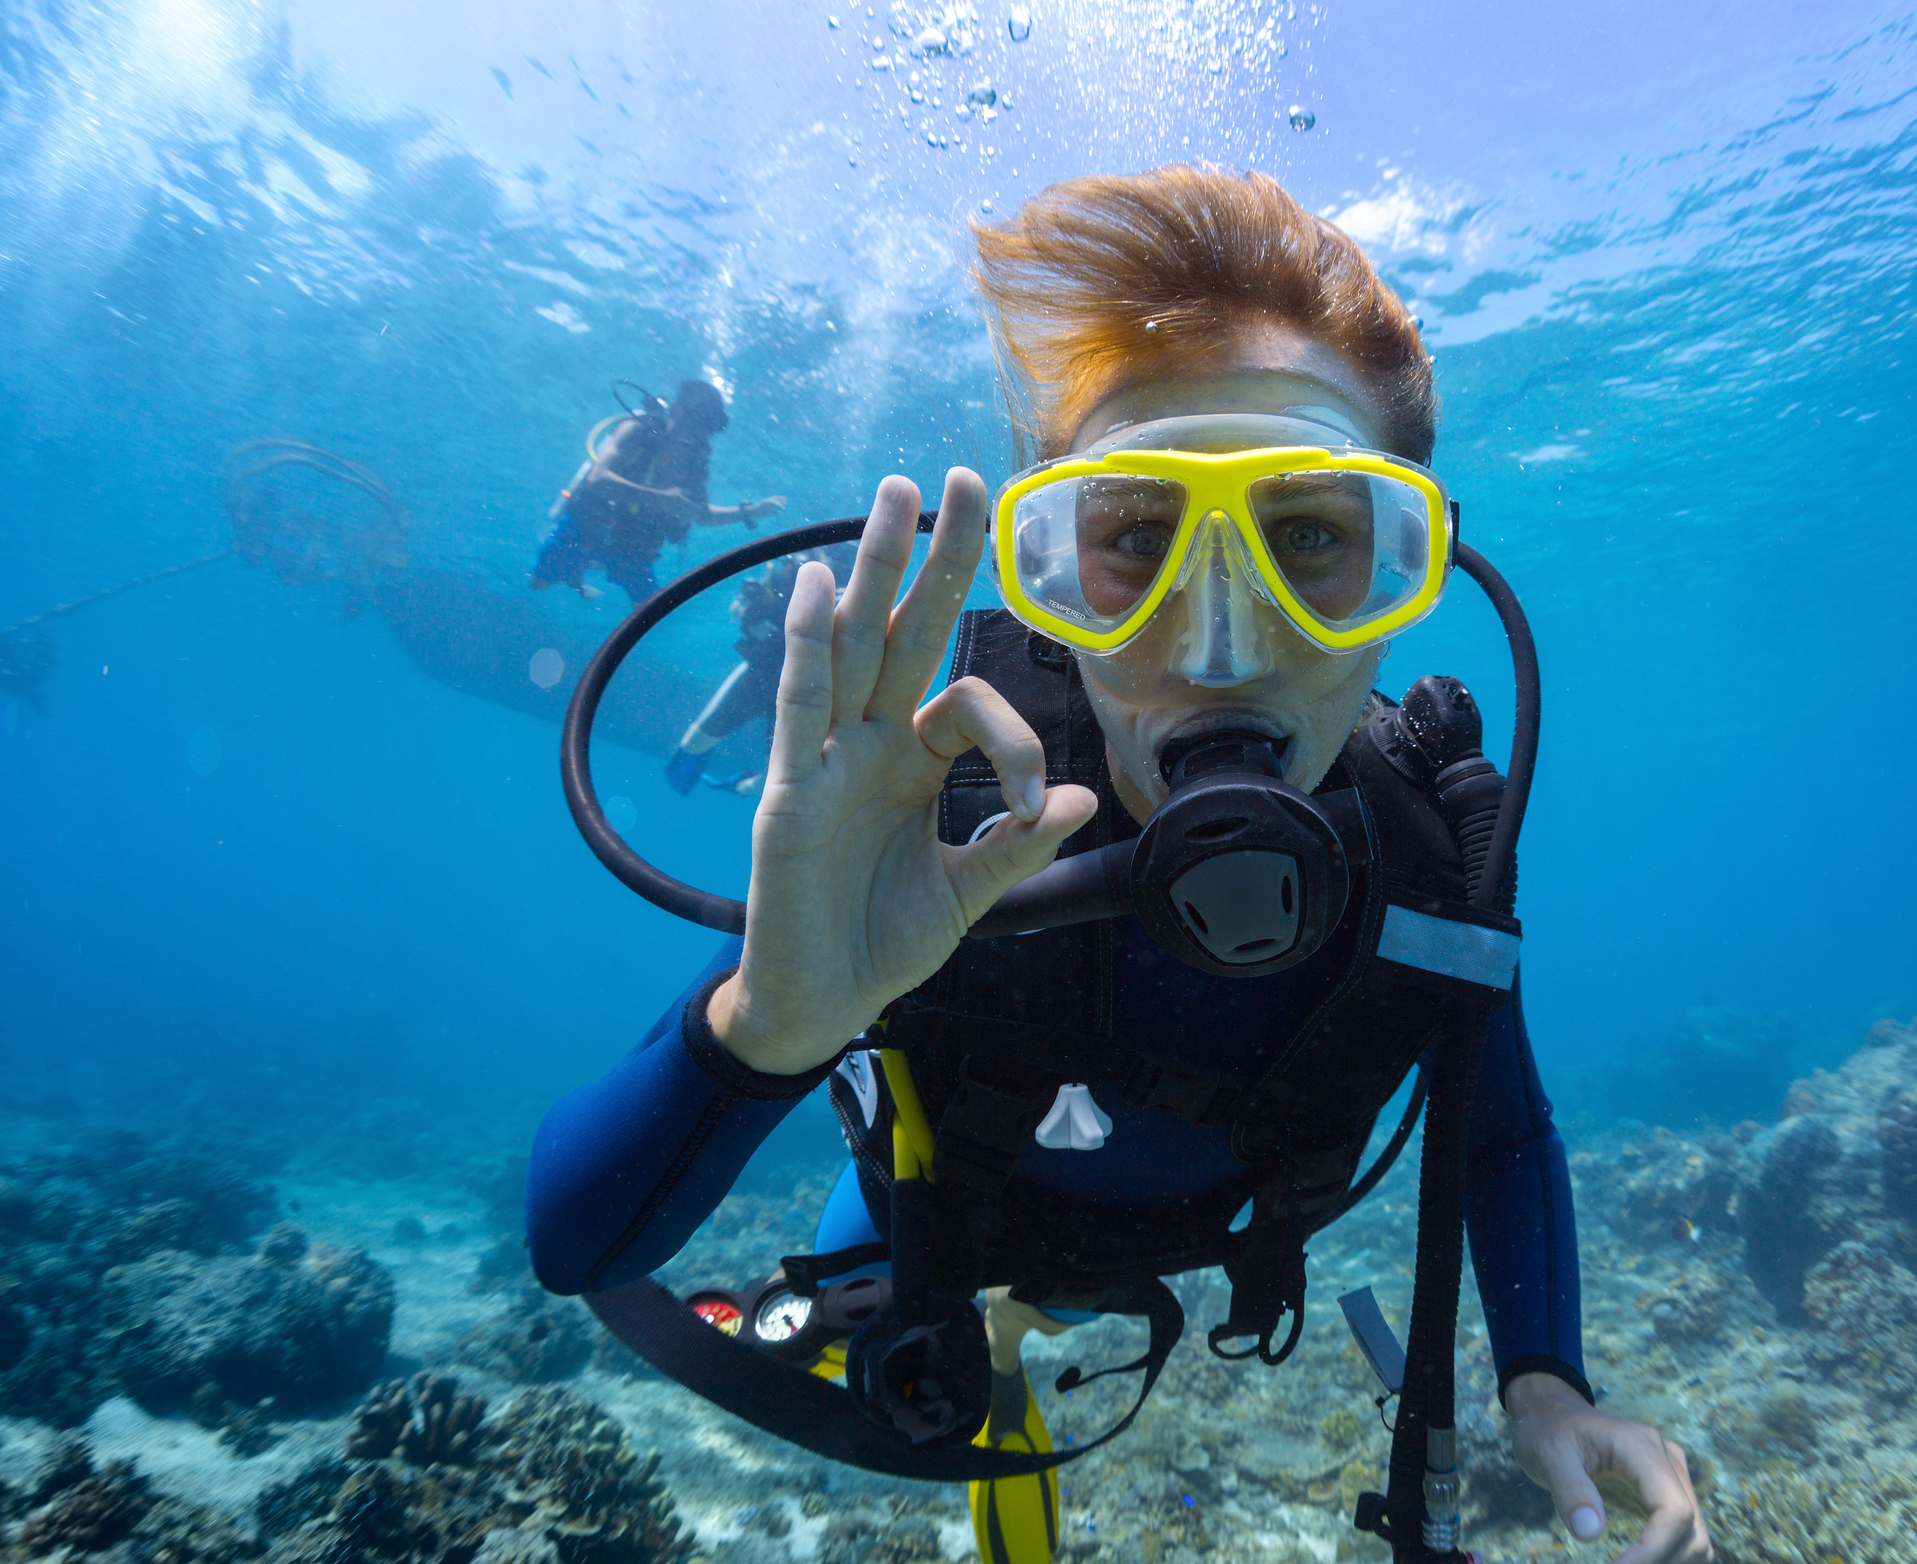 Richmond Community College will be offering a four-day open water scuba diving class beginning March 17. For information, call (910) 410-1848.